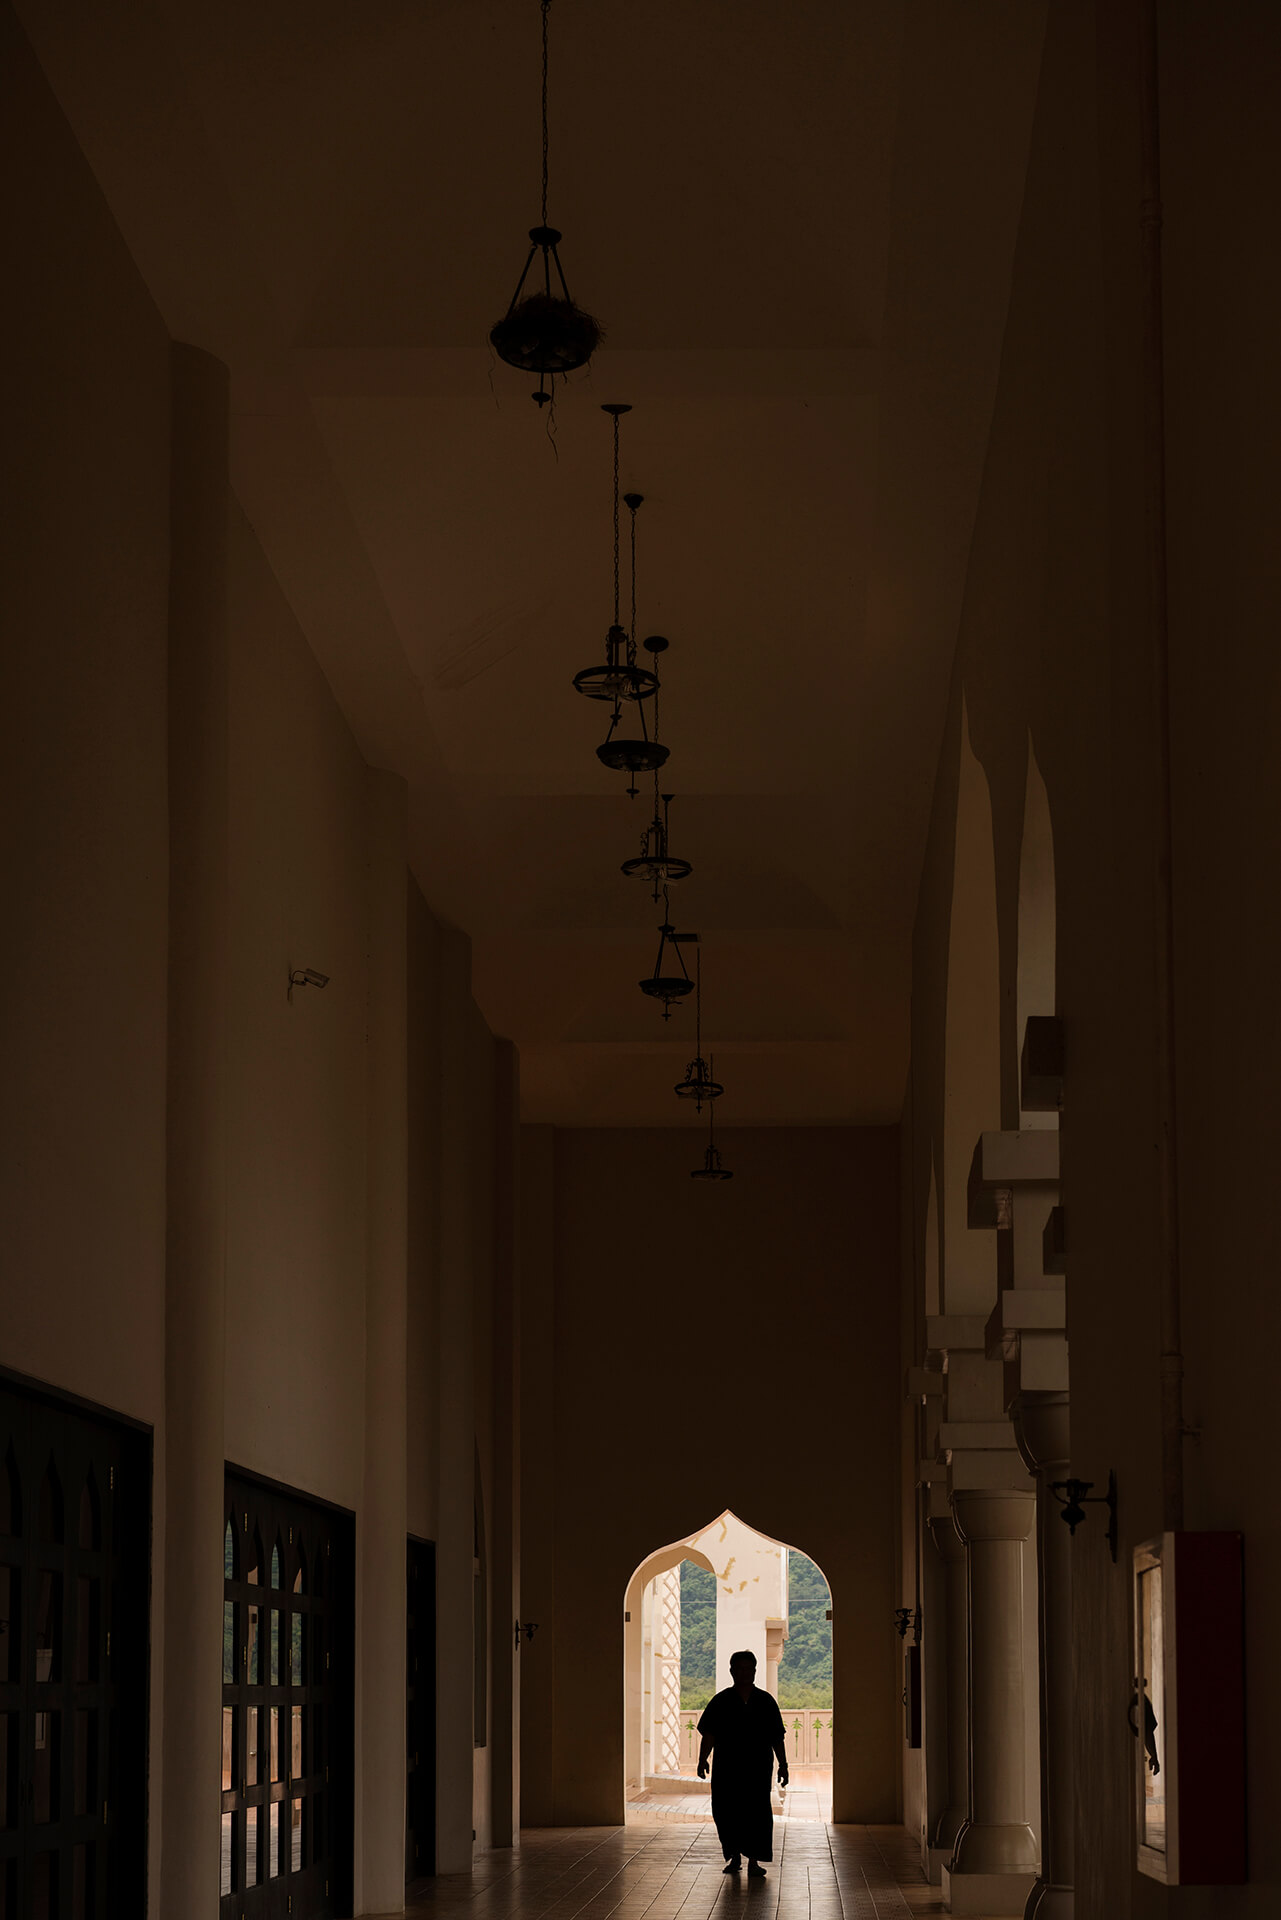 A Muslim man walking along the peaceful halls of a mosque